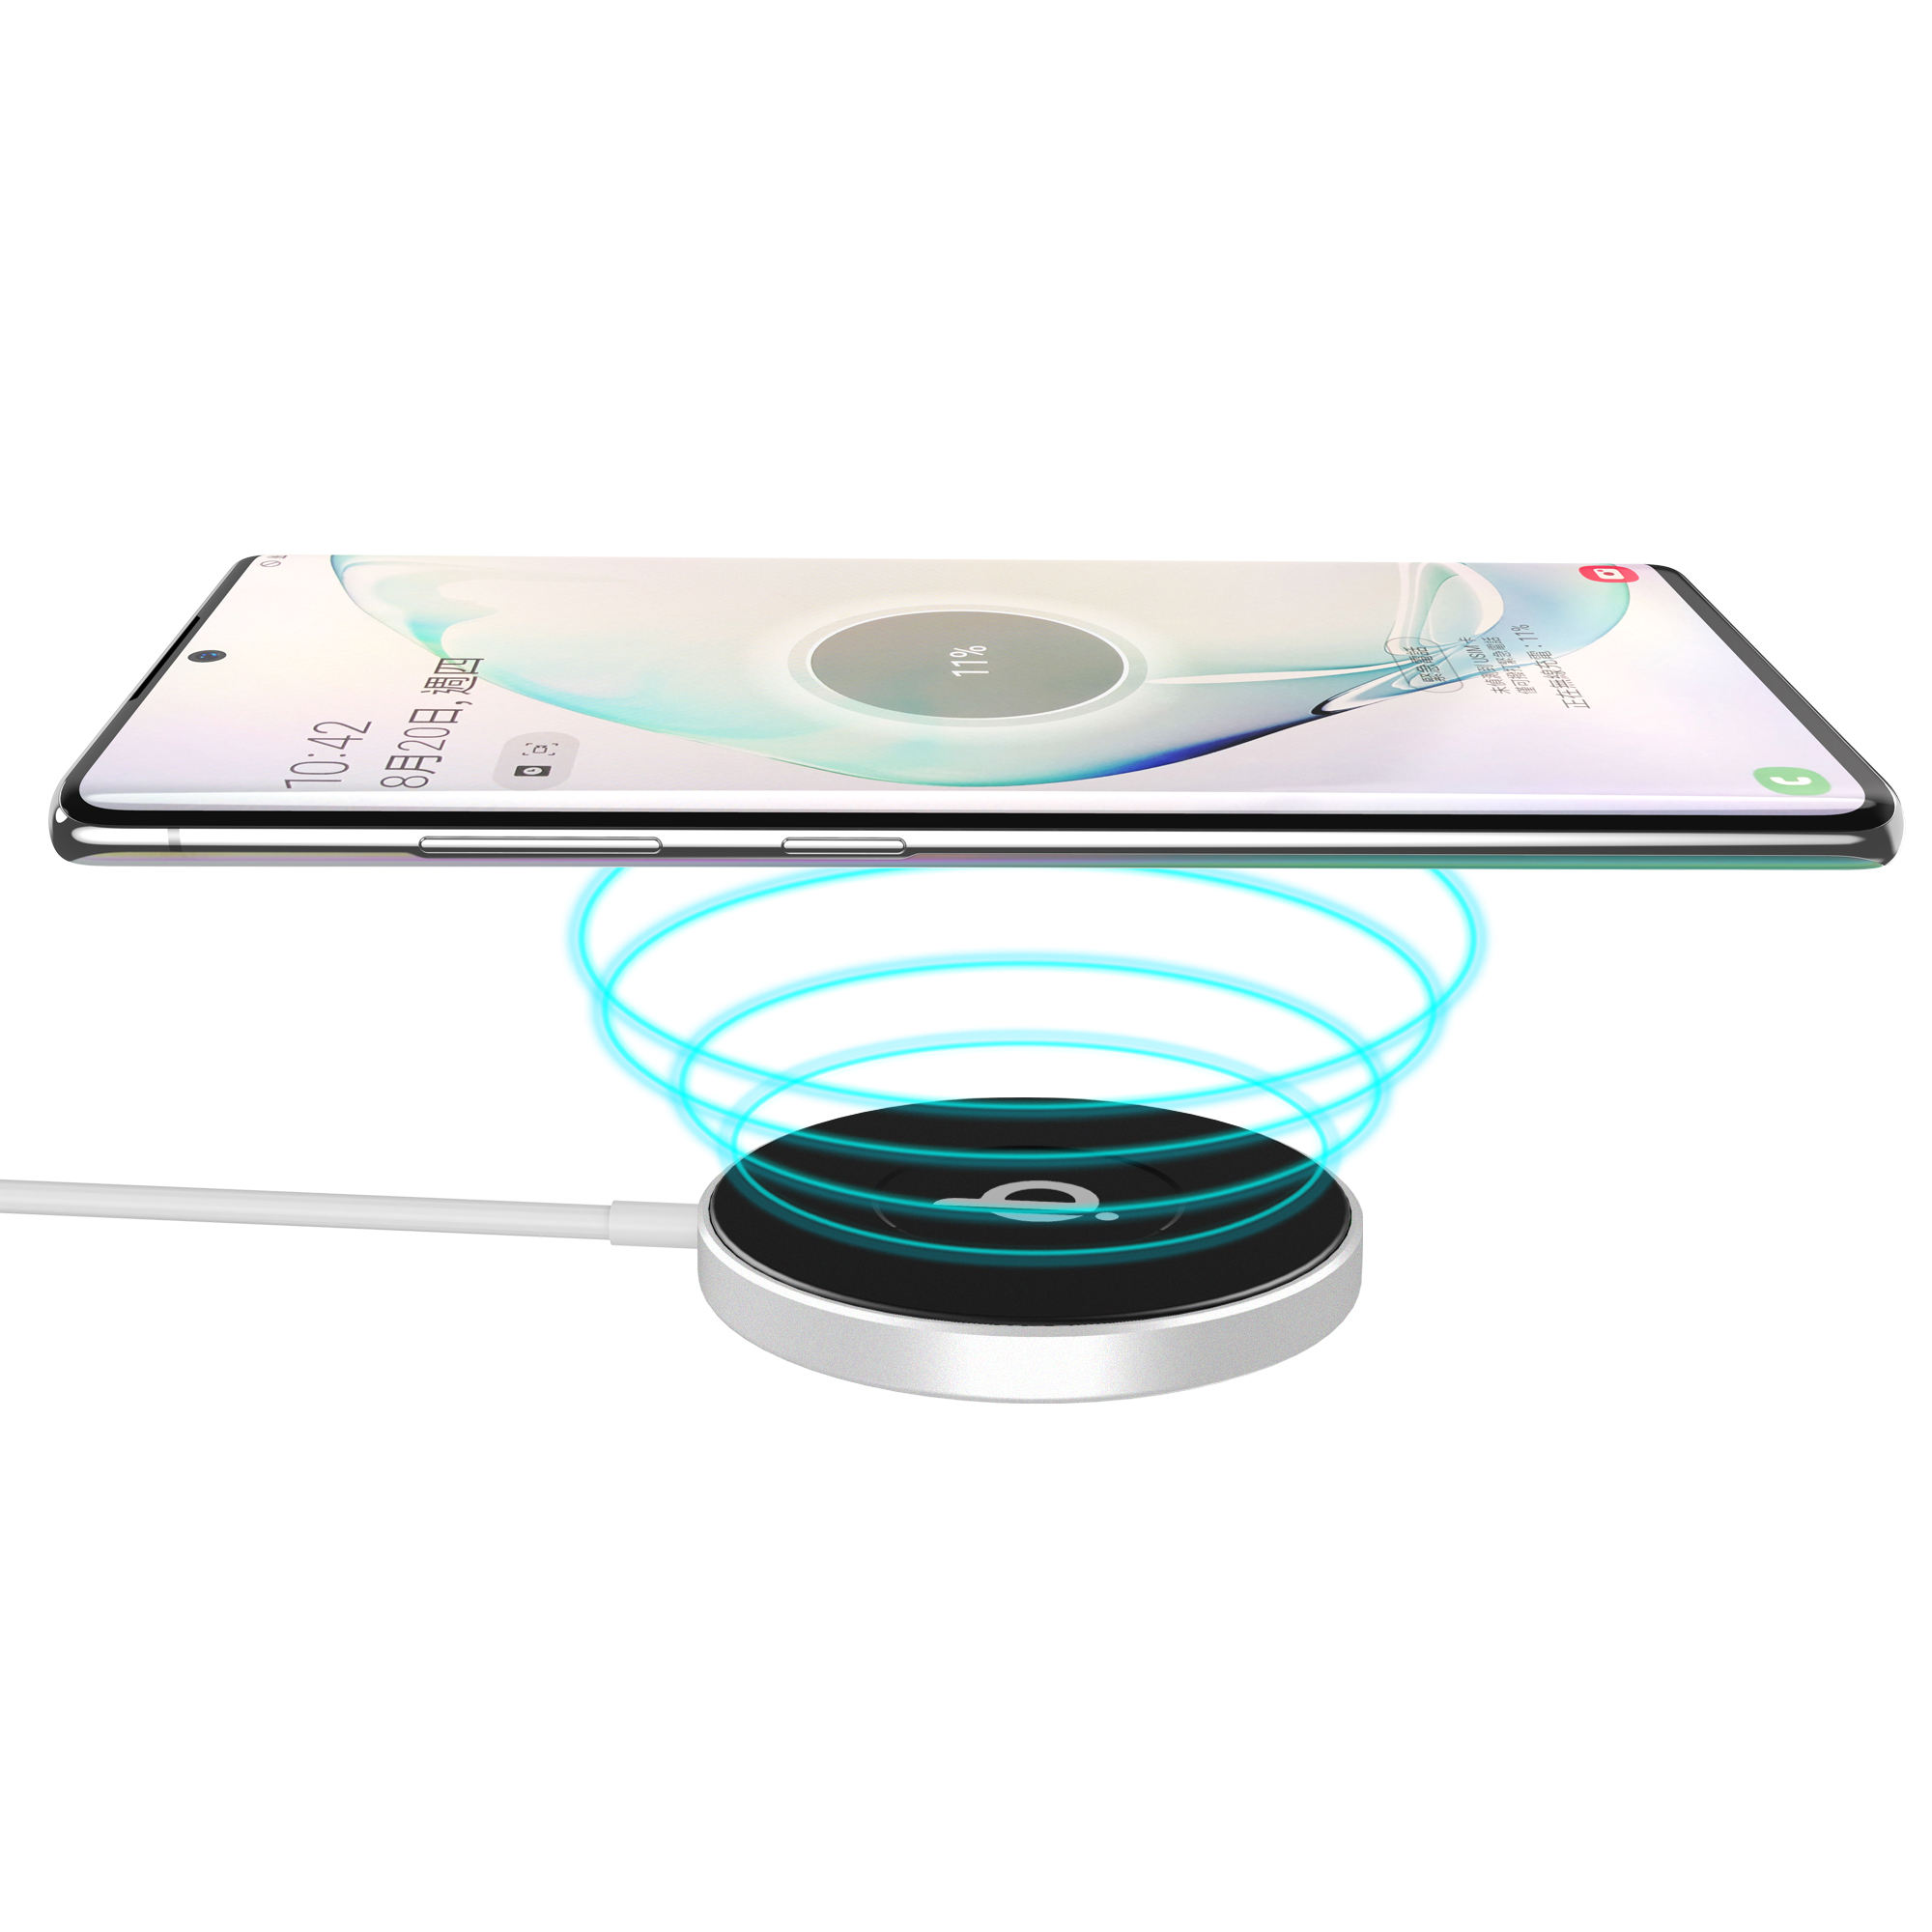 Universal Portabel <span class=keywords><strong>Nirkabel</strong></span> Mobile Phone Charger 15W Magnetik <span class=keywords><strong>Nirkabel</strong></span> Cepat Charger Pengisian Pad QI Wireless Charger